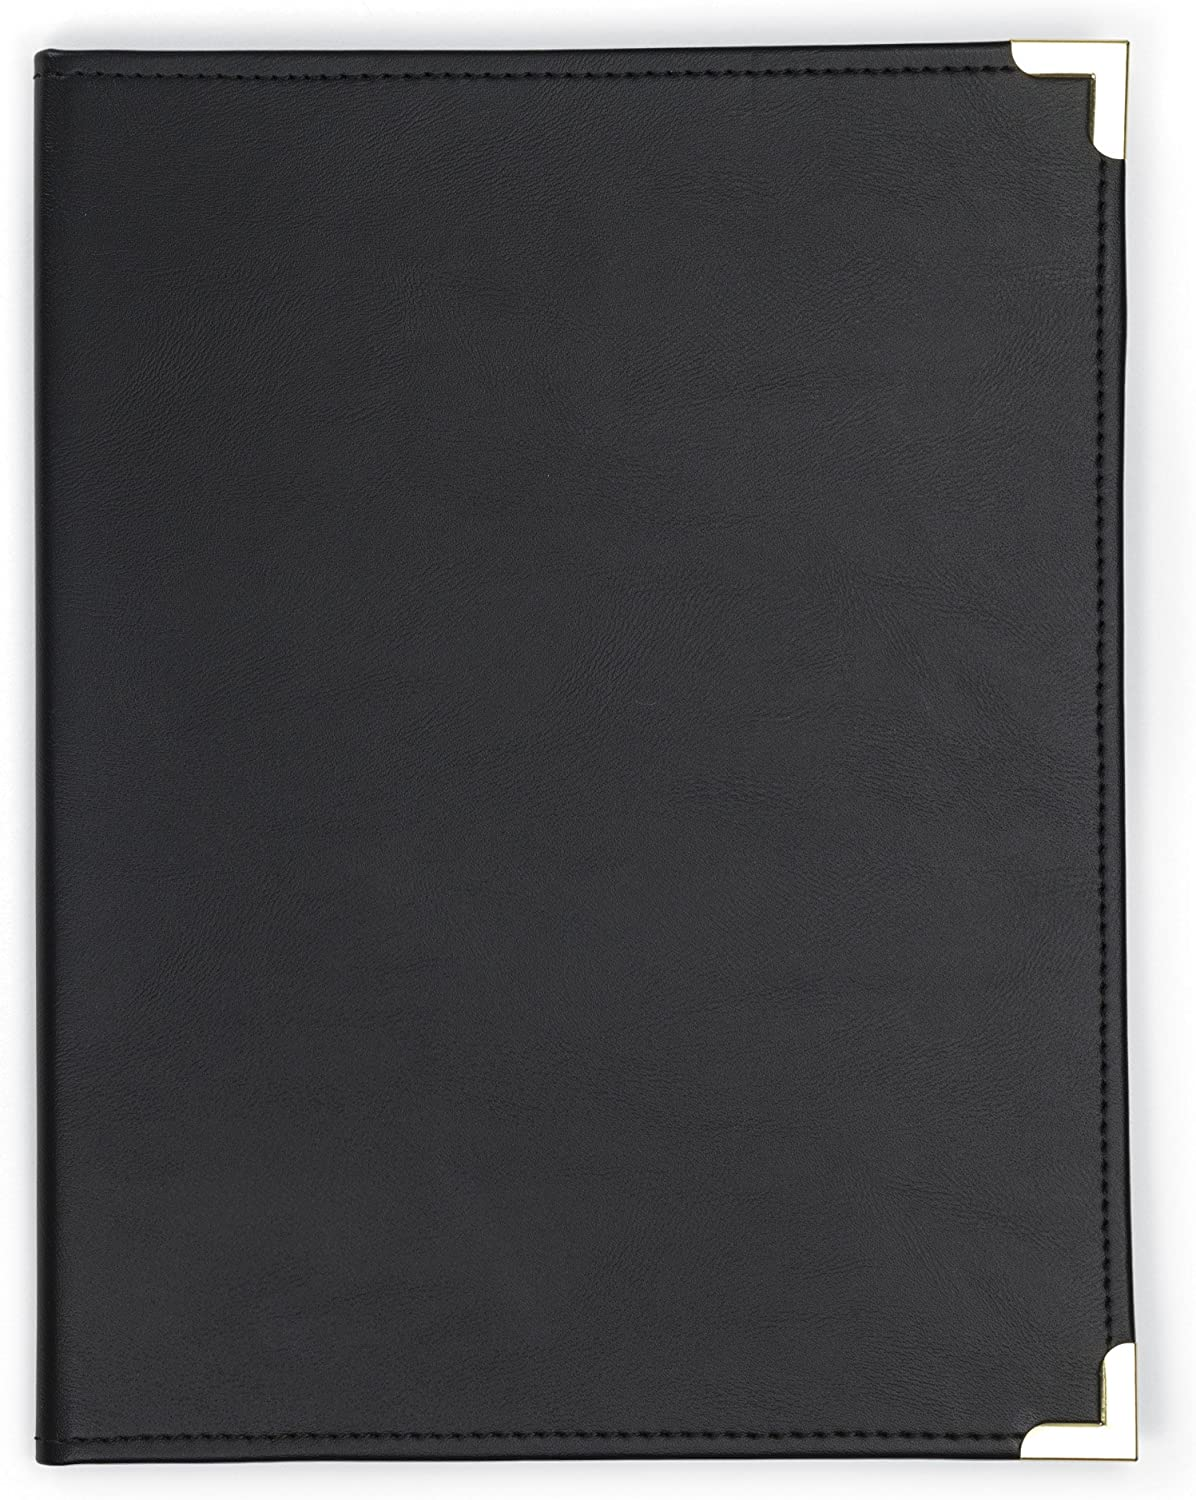 Samsill Classic Collection Business PadfolioExecutive Portfolio, Faux Leather & Brass Corners, Resume Document Organizer, 8.5 x 11 Writing Pad, Black